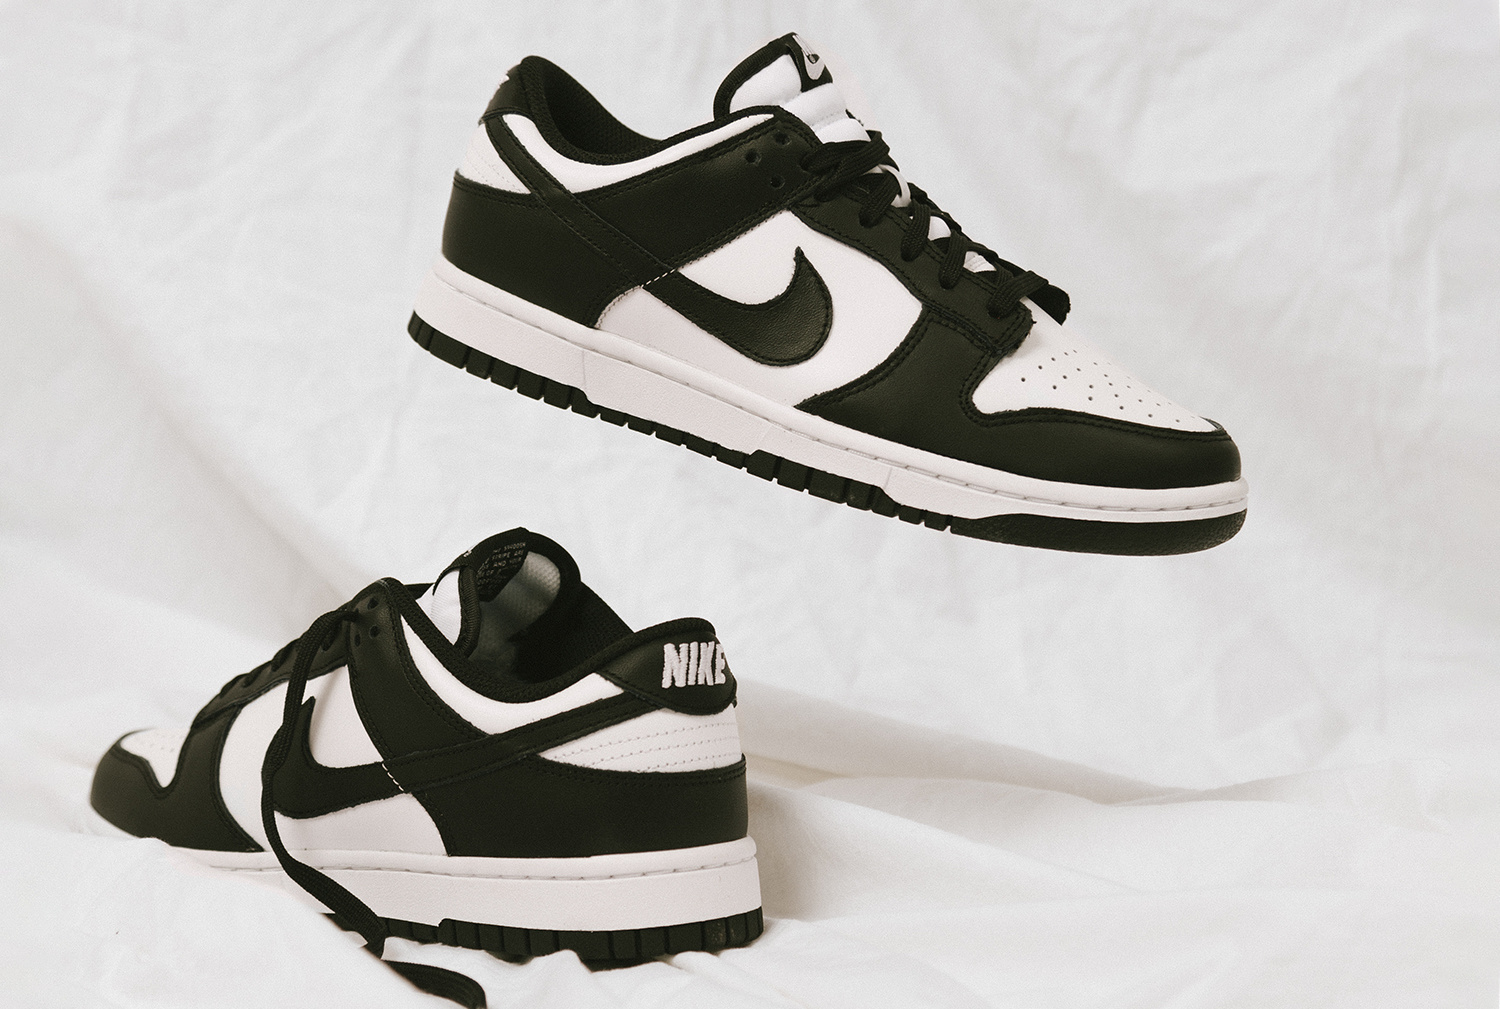 21.01.2021 - Nike Dunk Low Retro Black/White